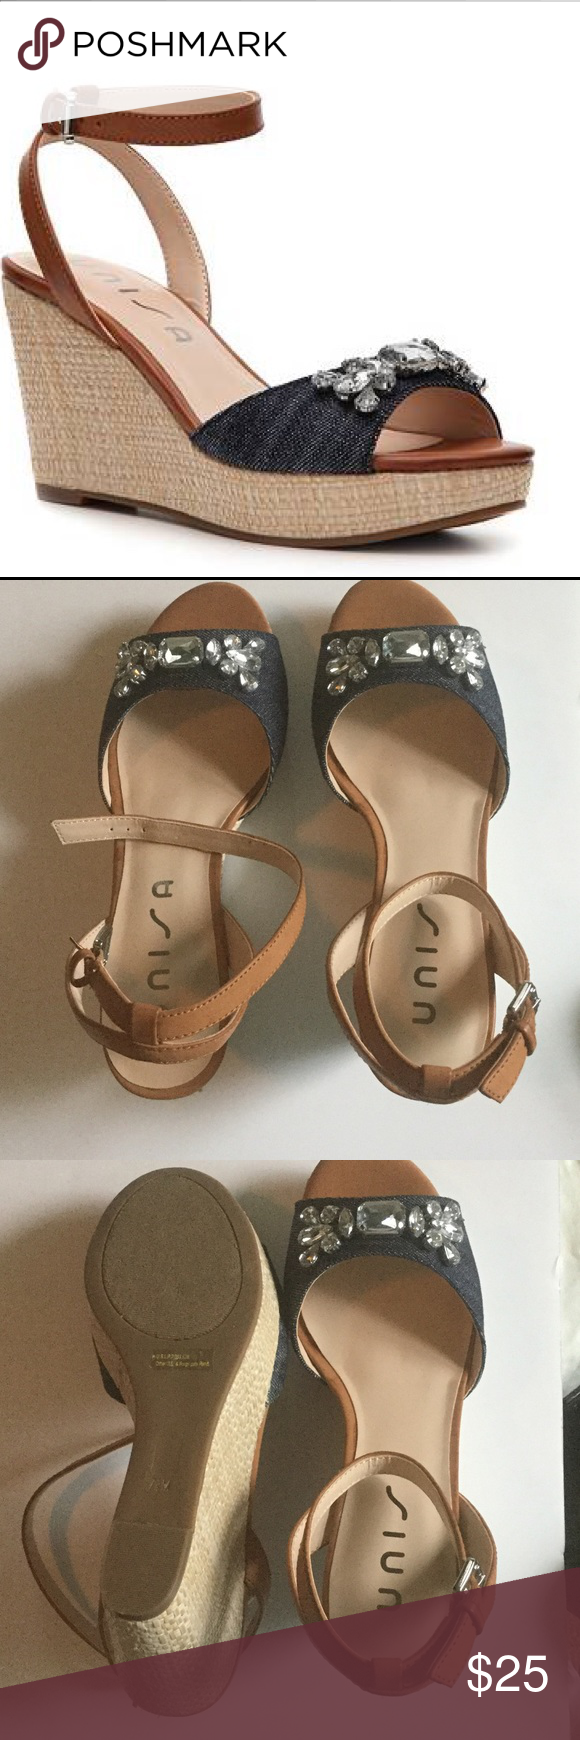 Unisa Krios denim embellished wedges Brand new!  Never worn! Denim with rhinestone embellishment Shoes Wedges